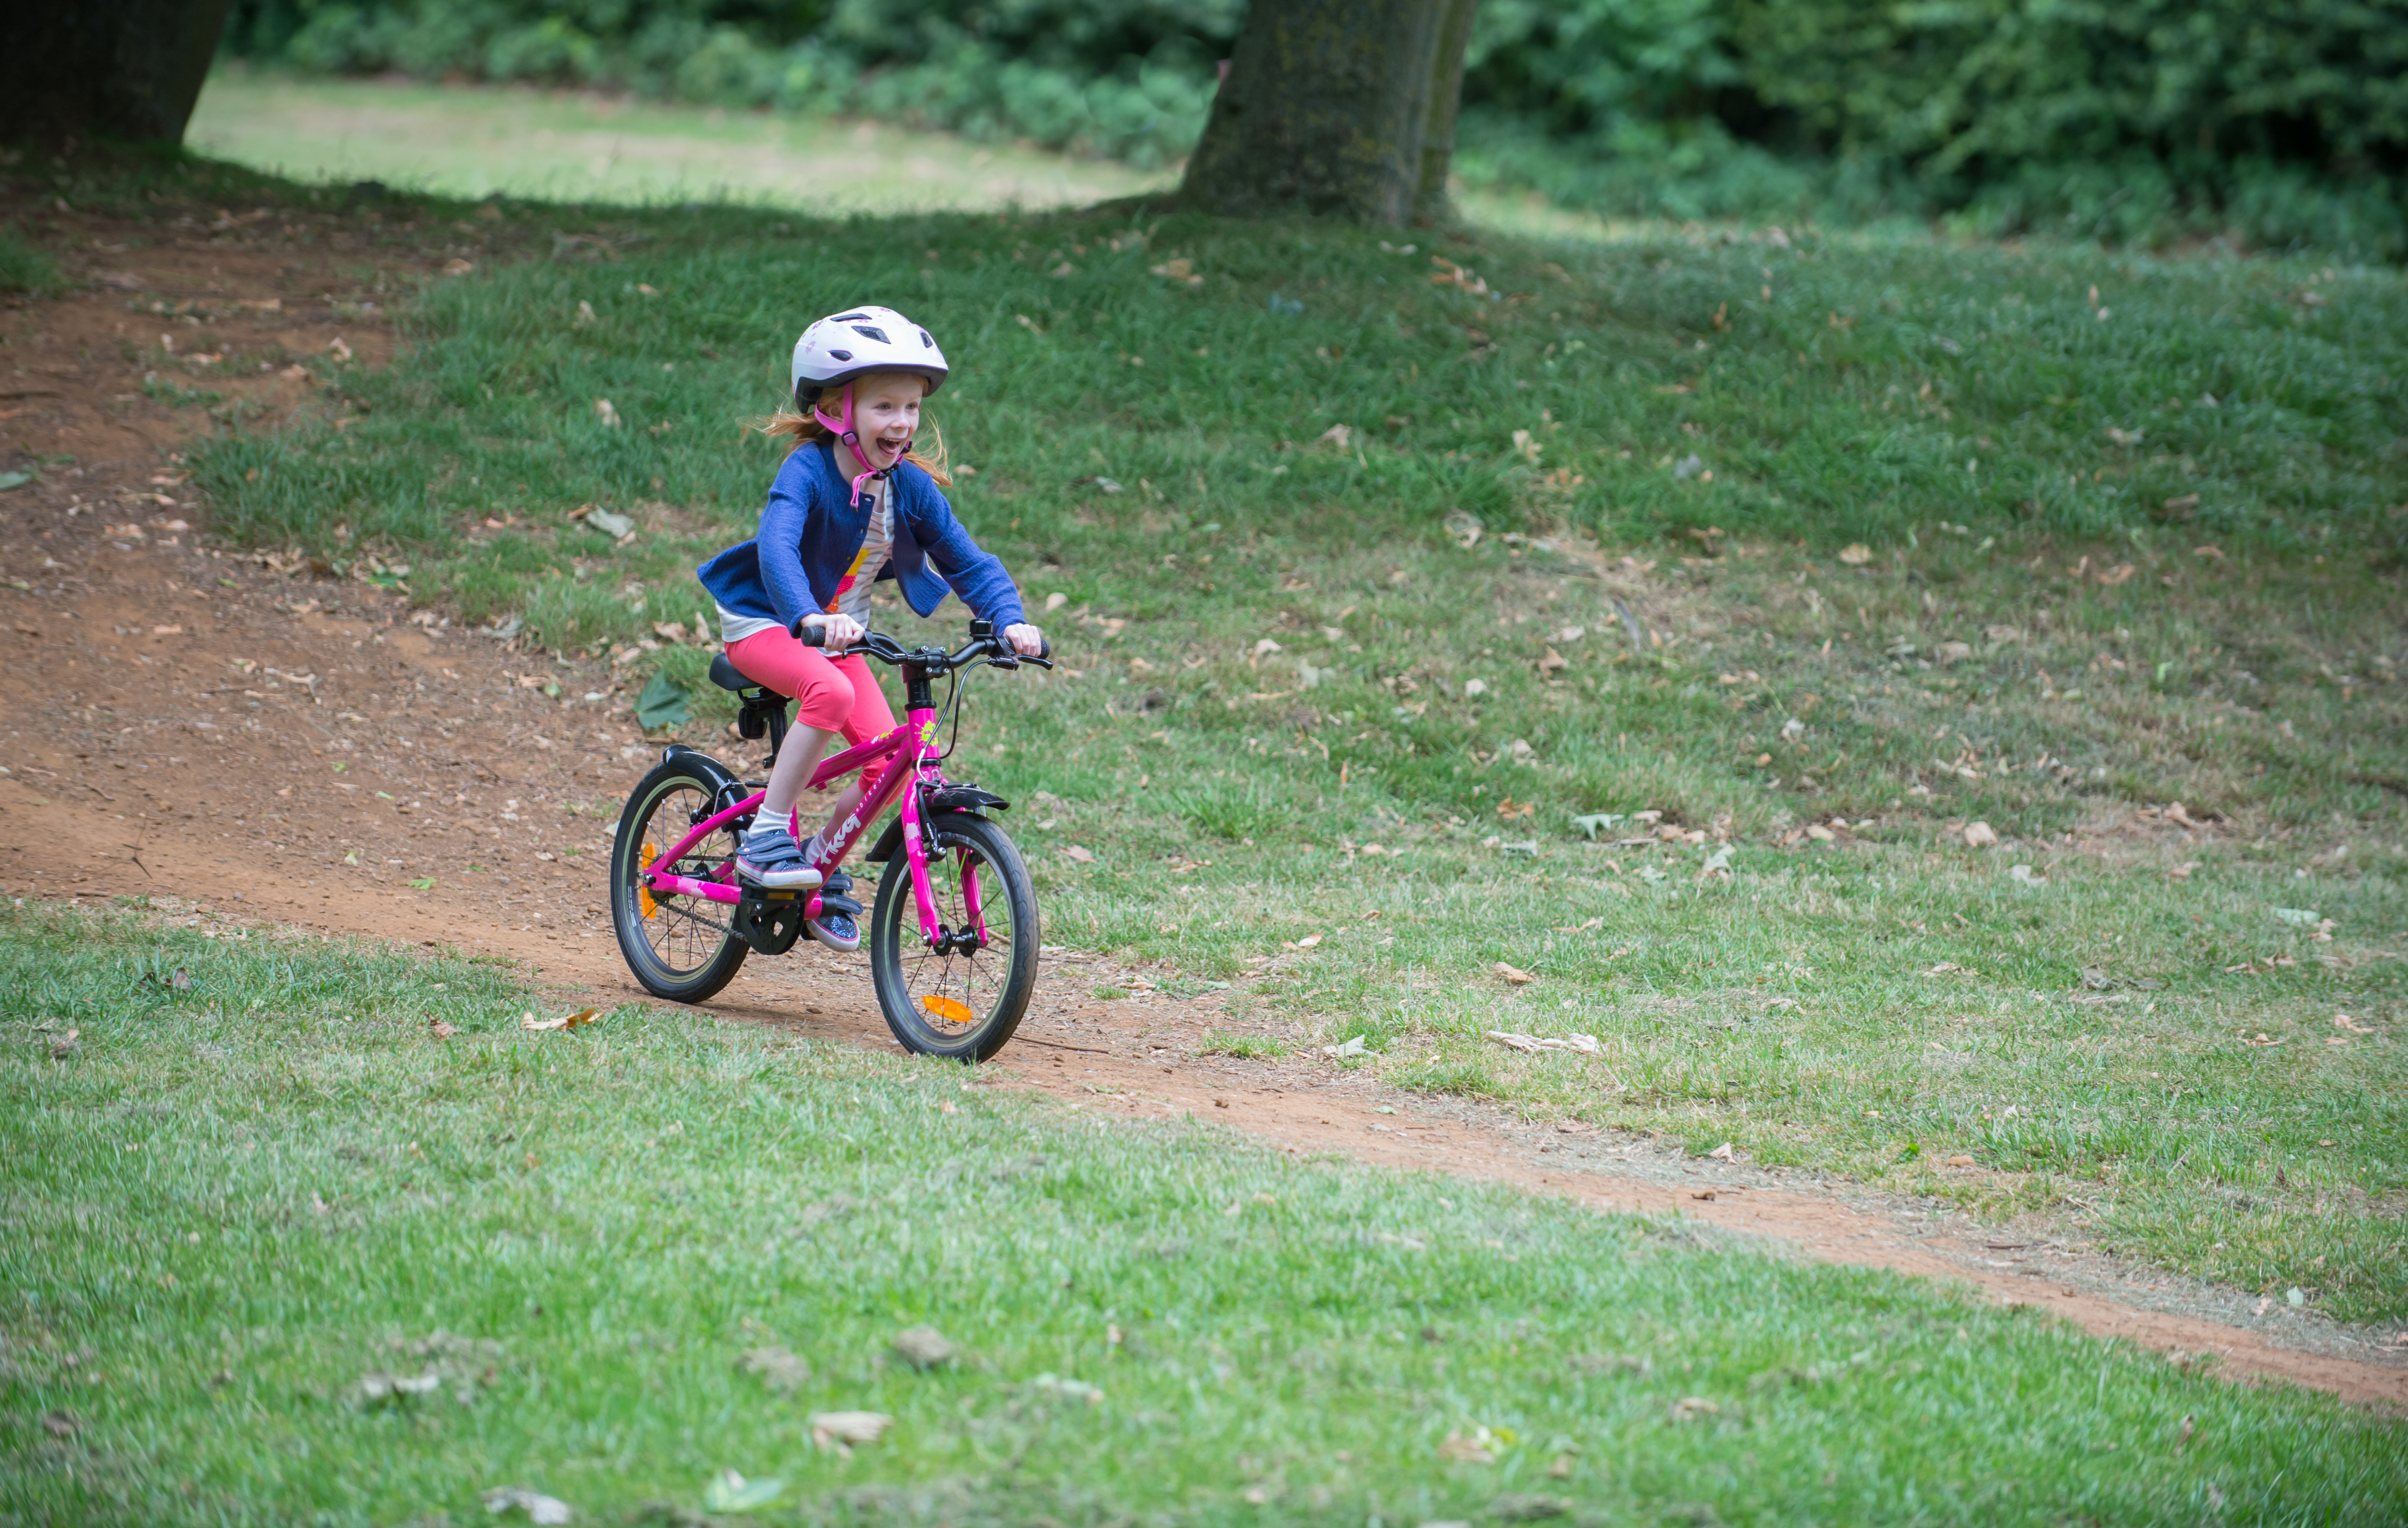 Young girl on a Frog Bike in a park flying down a hill on her bike smiling